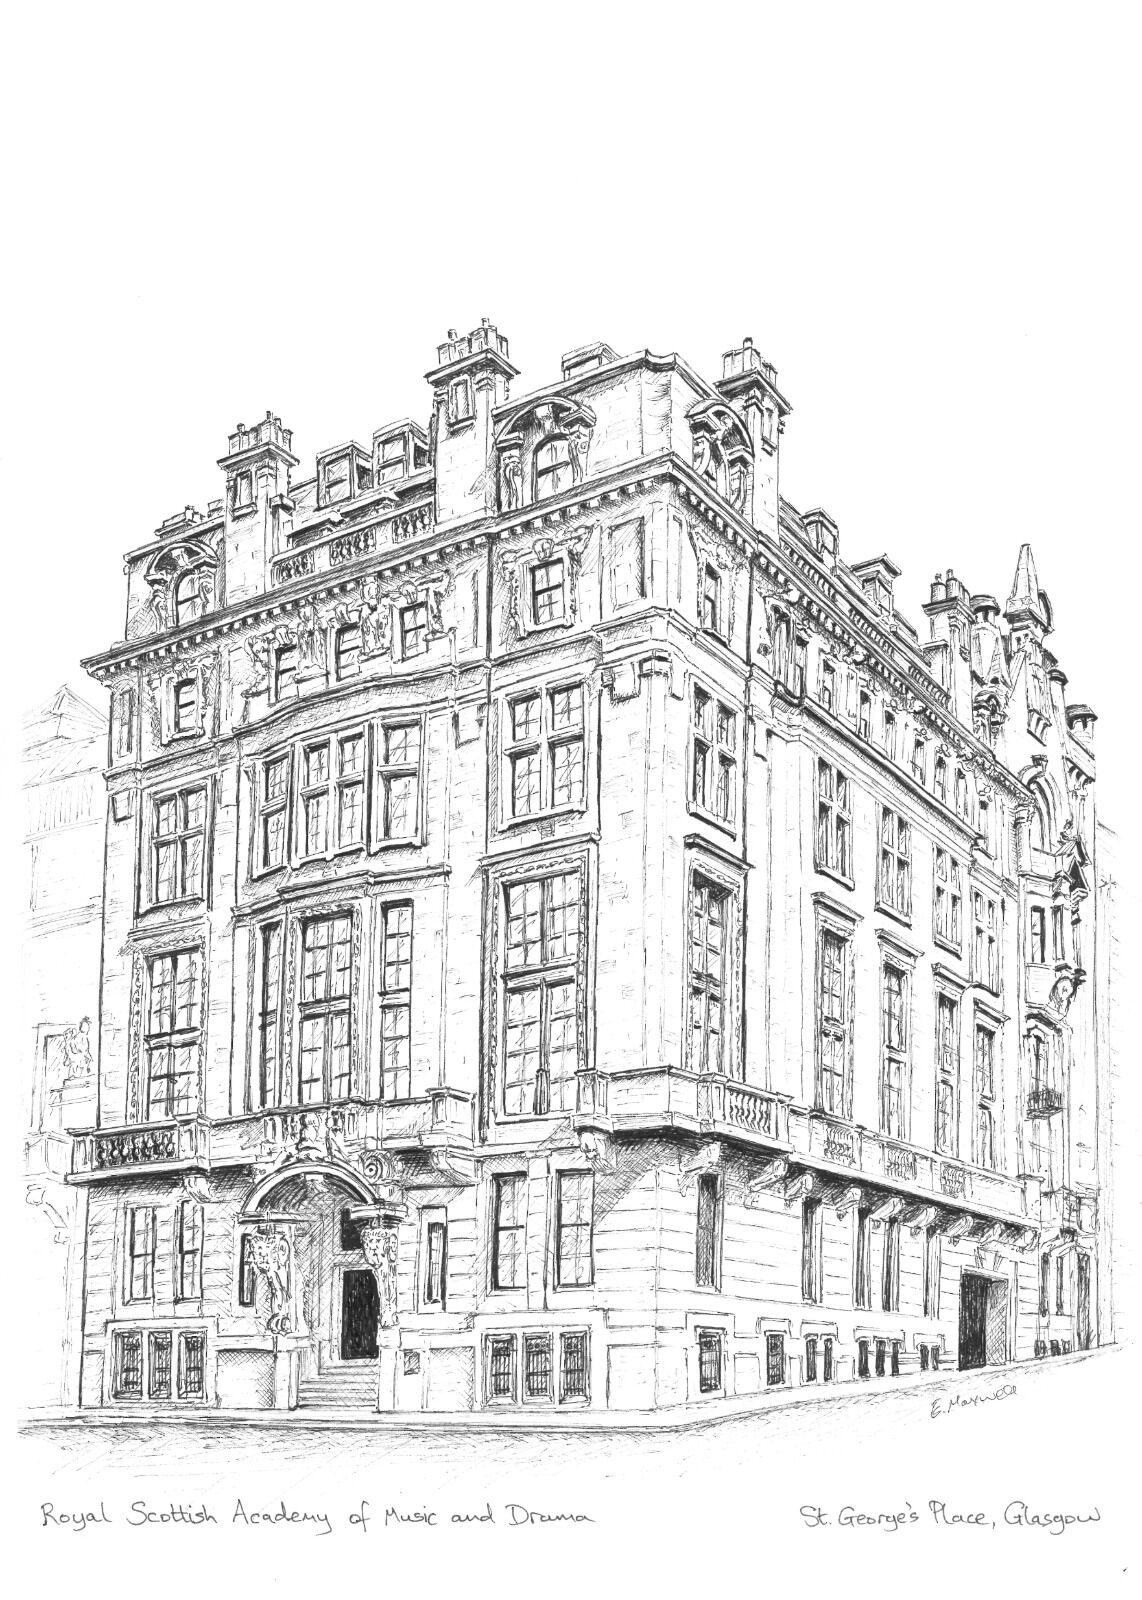 Royal Scottish Academy of Music and Drama, St George's Place (B&W)